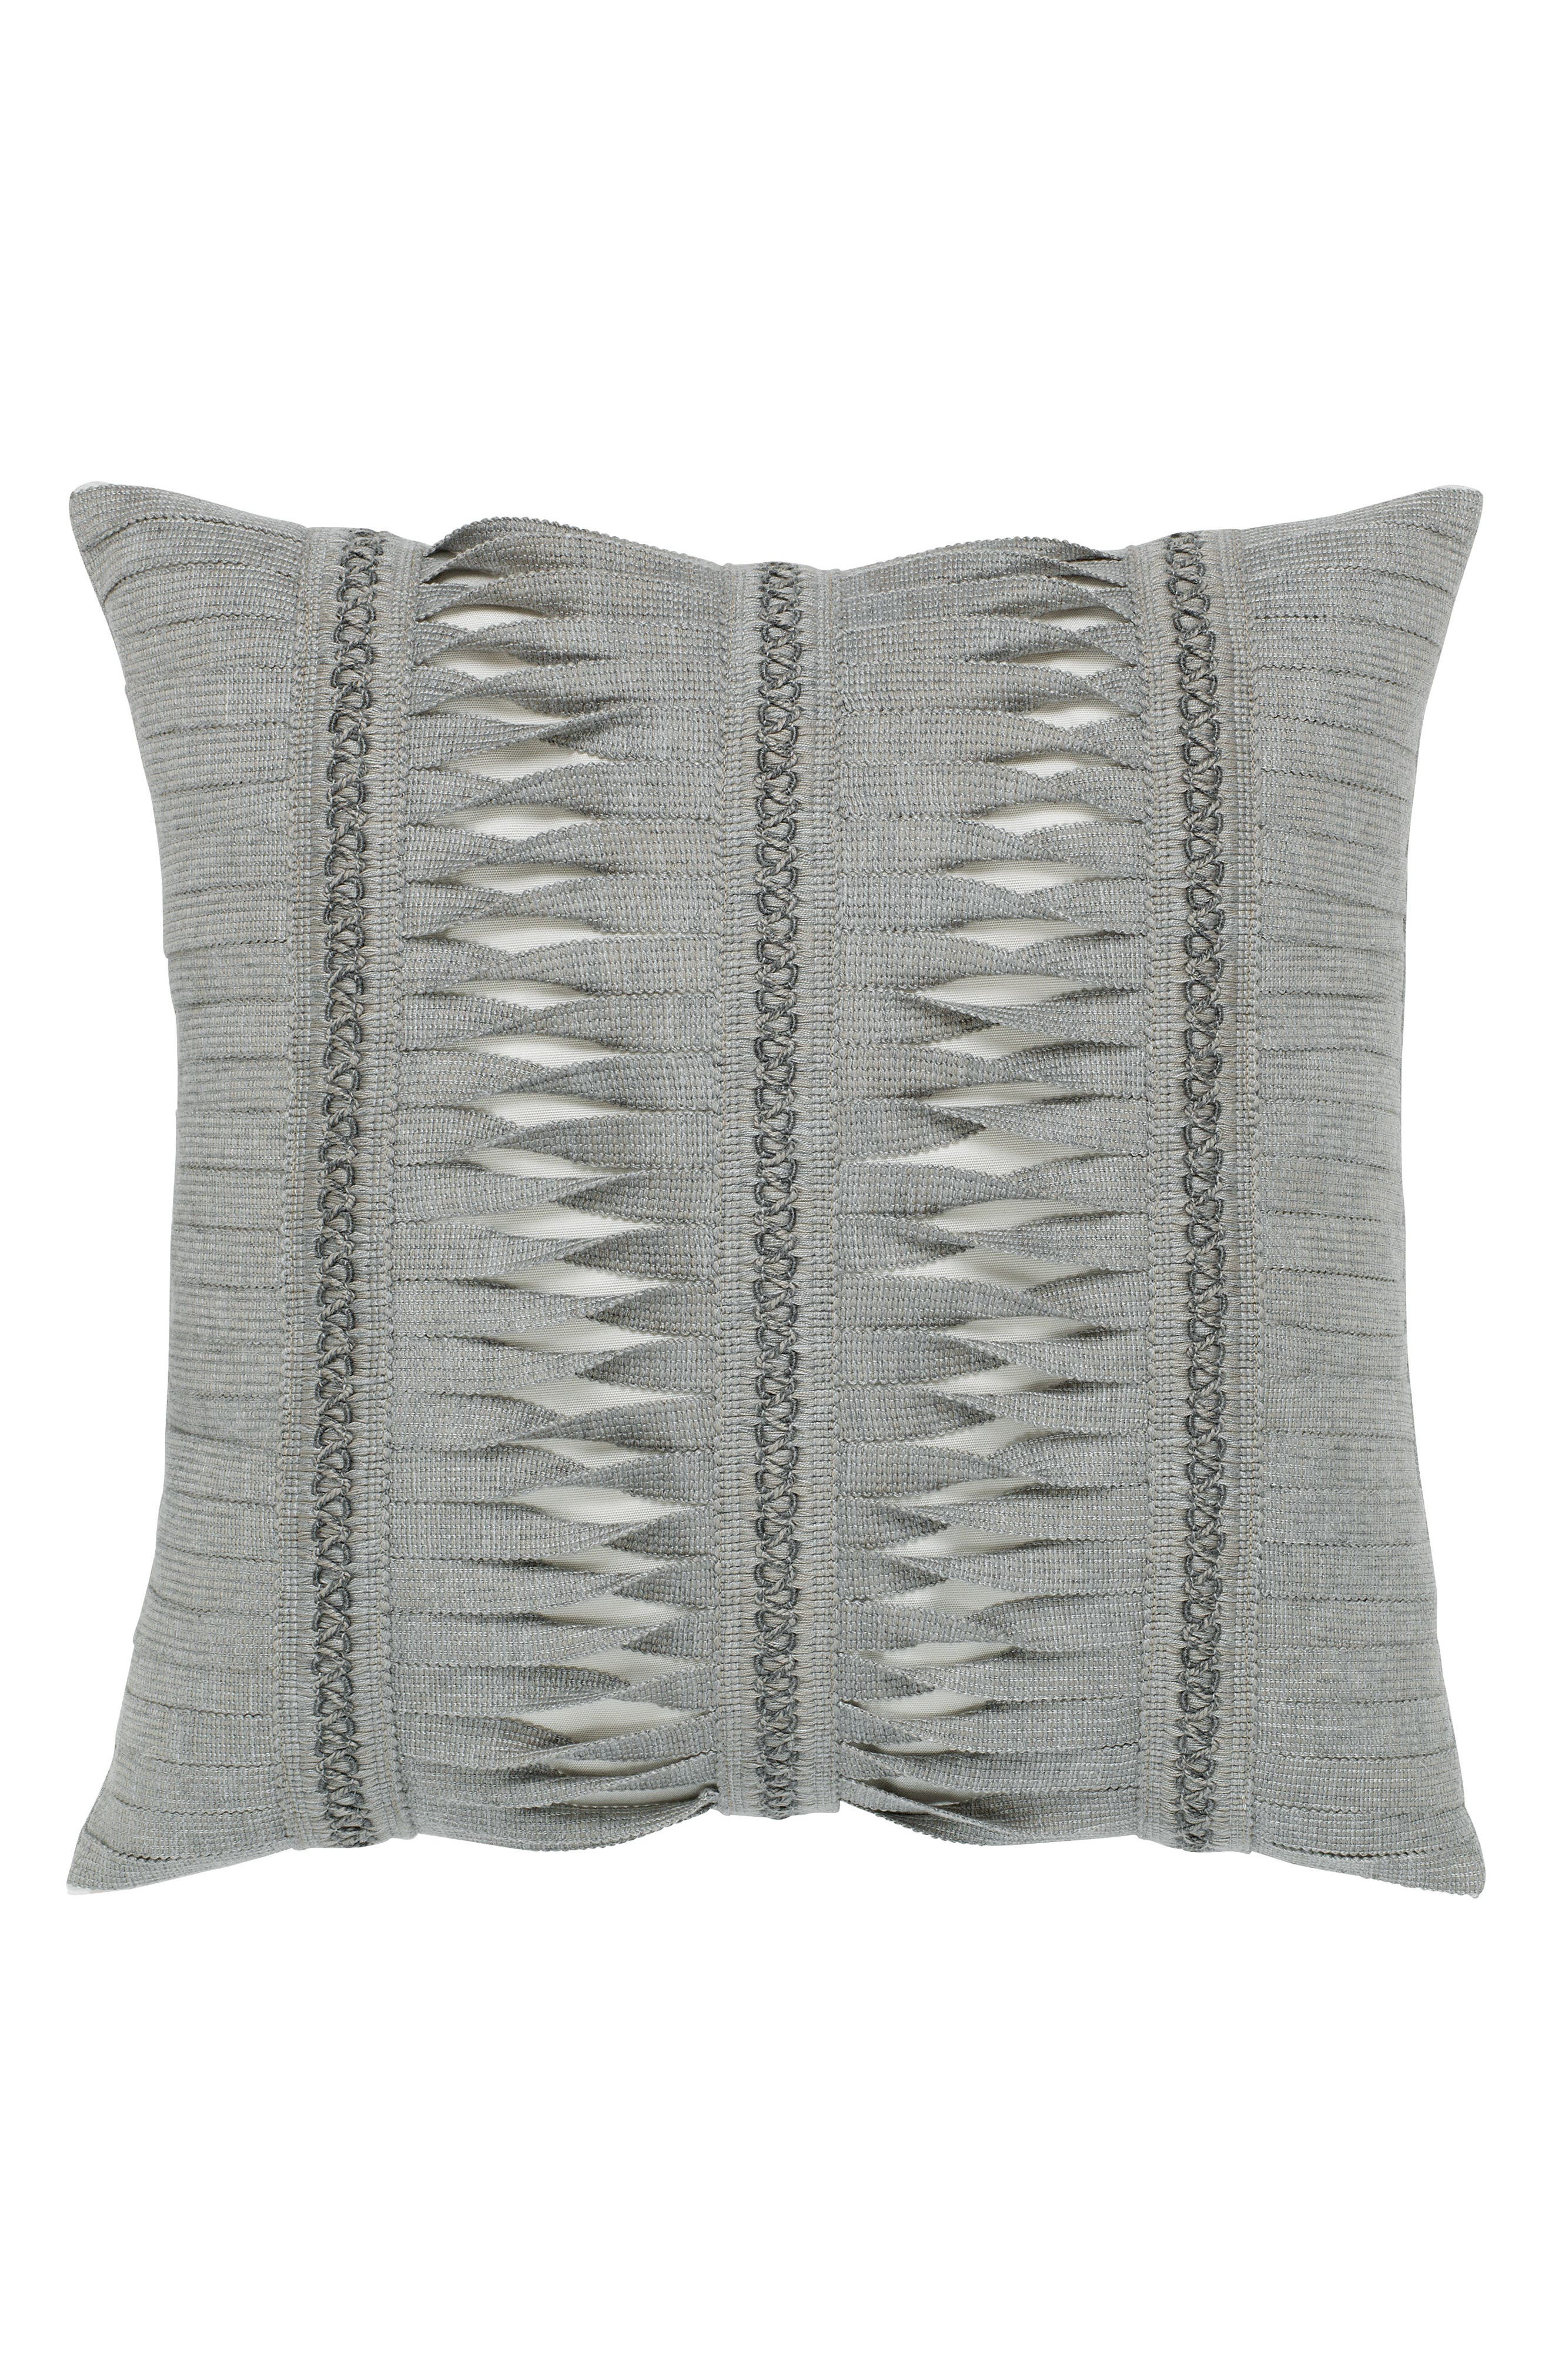 Gladiator Granite Indoor/Outdoor Accent Pillow,                             Main thumbnail 1, color,                             020